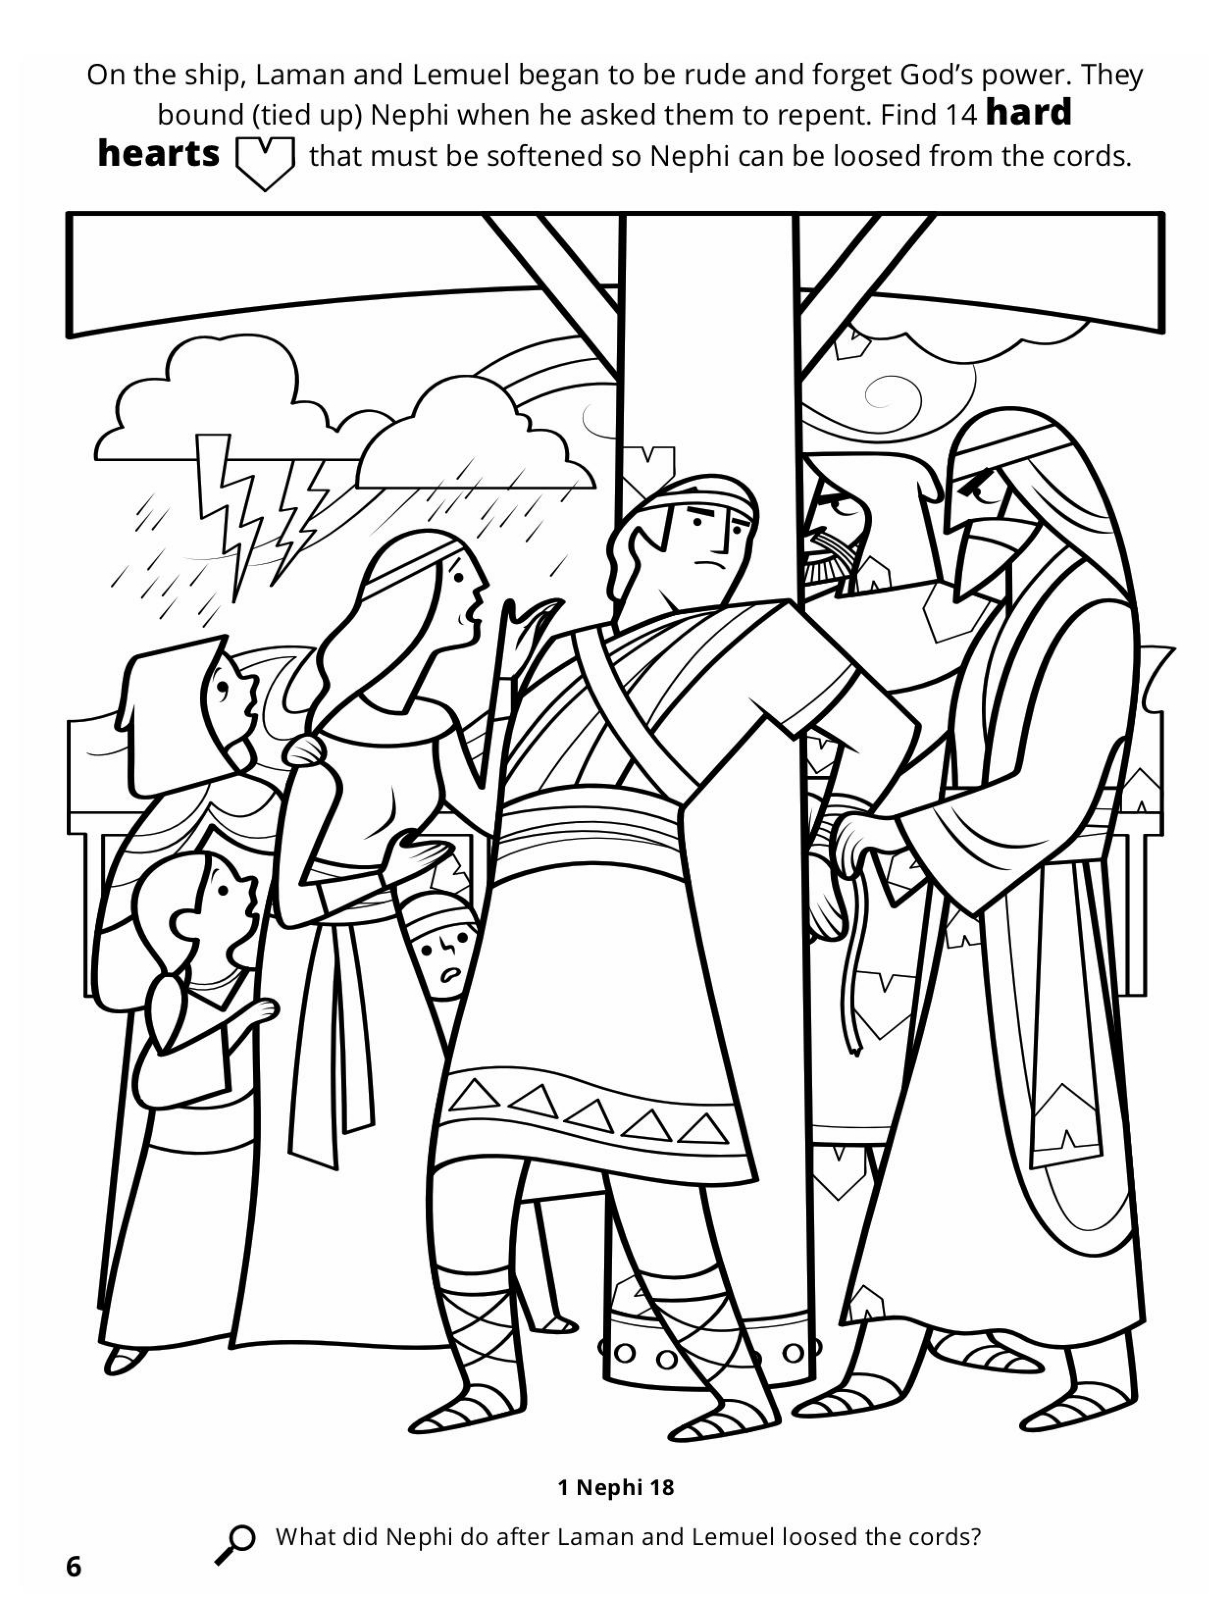 book of mormon coloring pages nephi - book of mormon coloring pages nephi coloring page